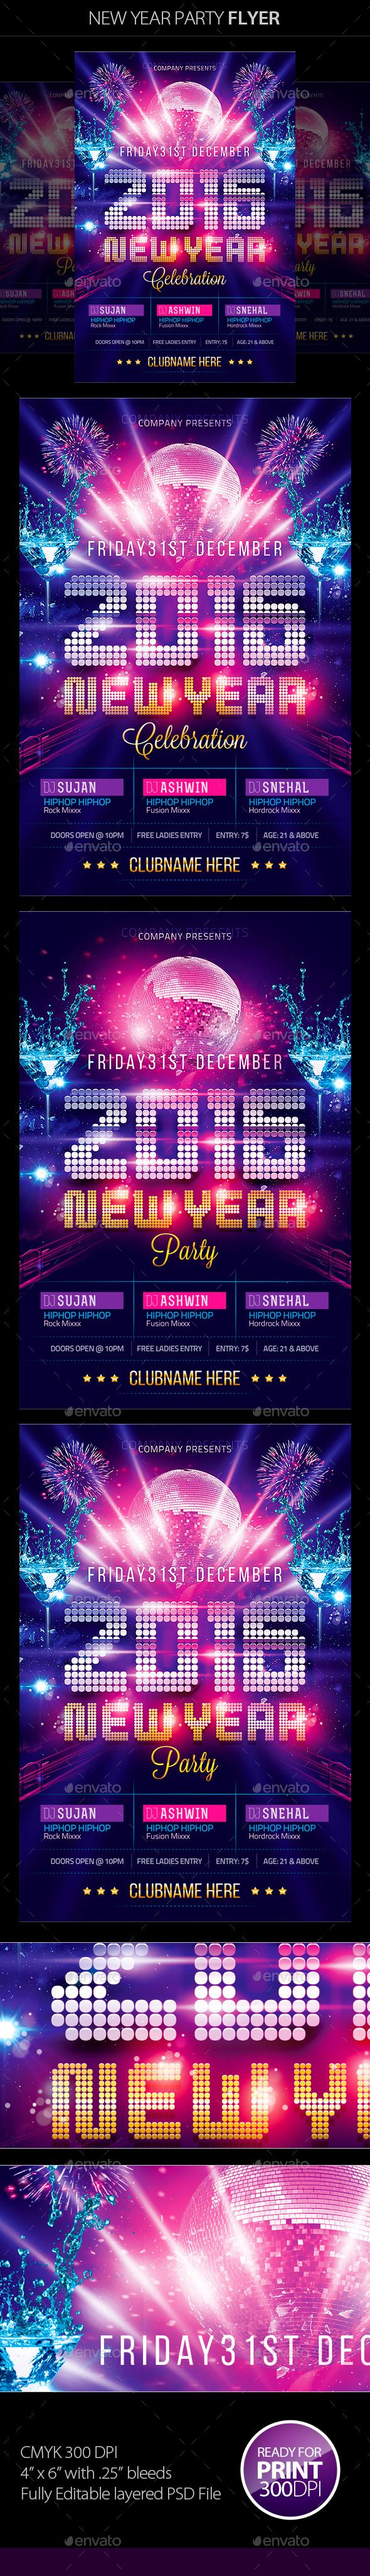 New Year Party Flyer Template PSD #design #nye Download…